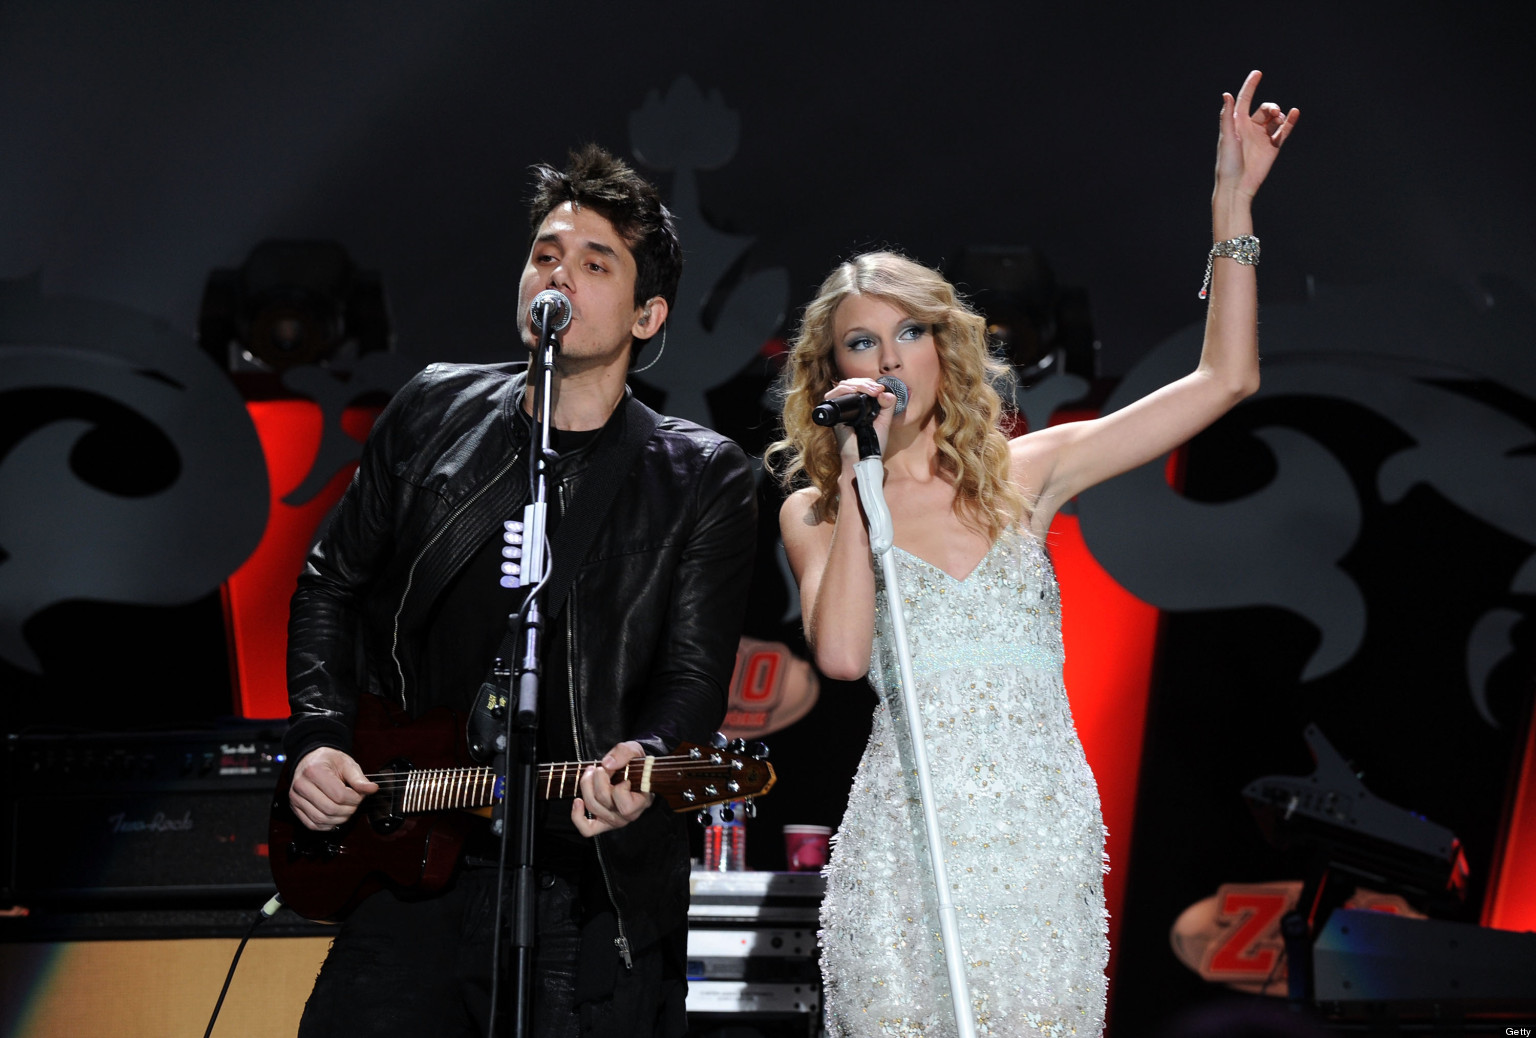 John Mayer's 'Paper Doll' Video Hits The Web, But Is The ...